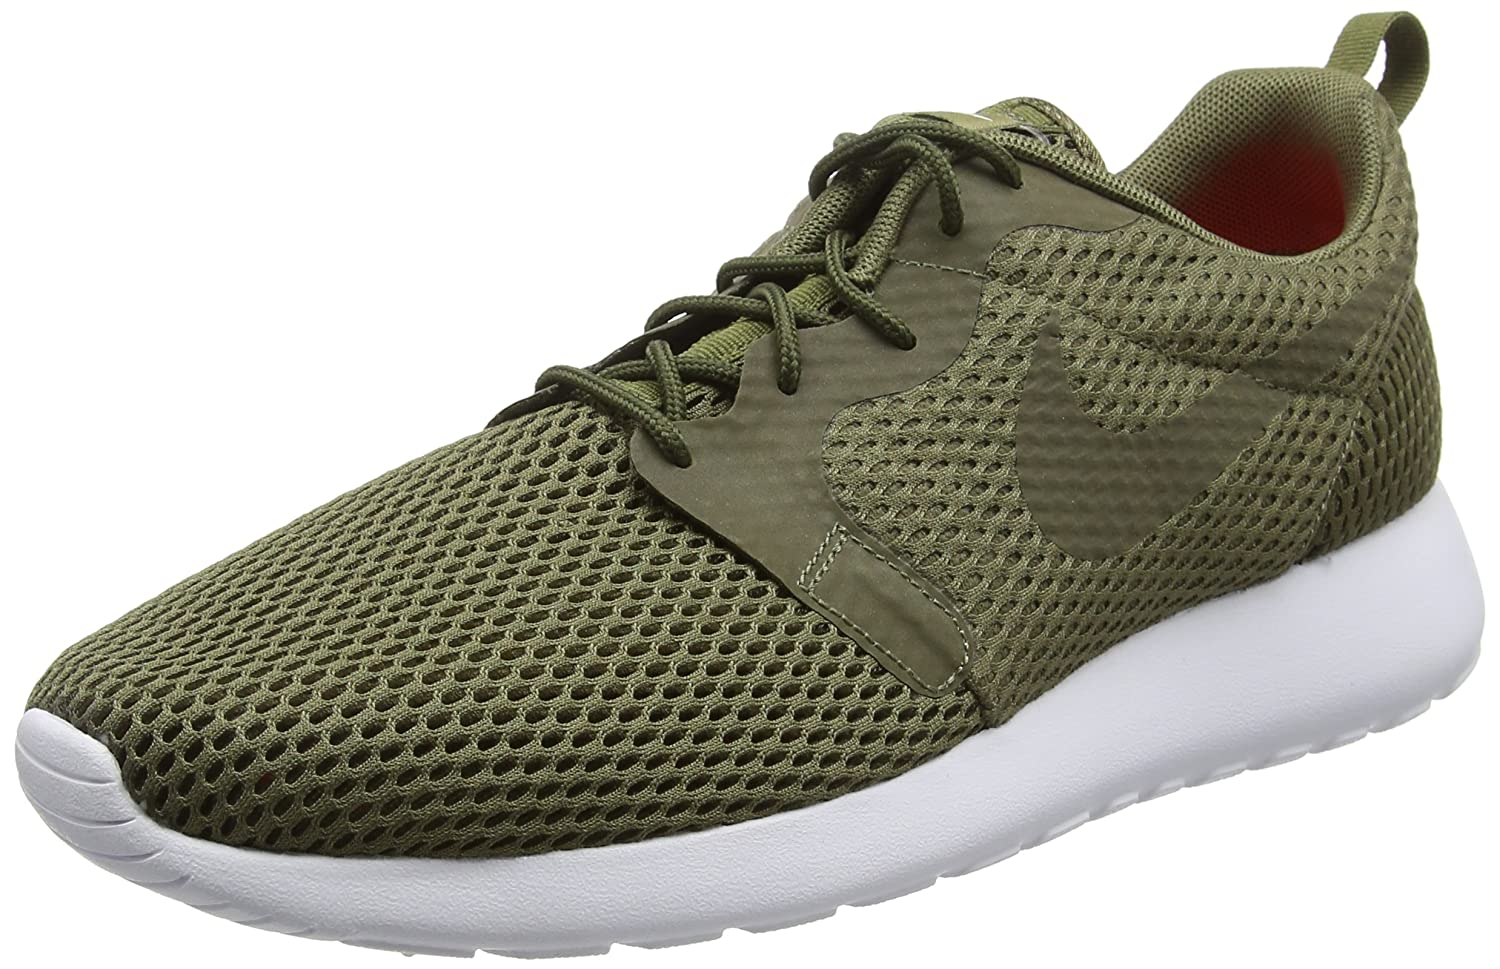 e953de019650 NIKE Men s Roshe One Hyp Br Training Running Shoes